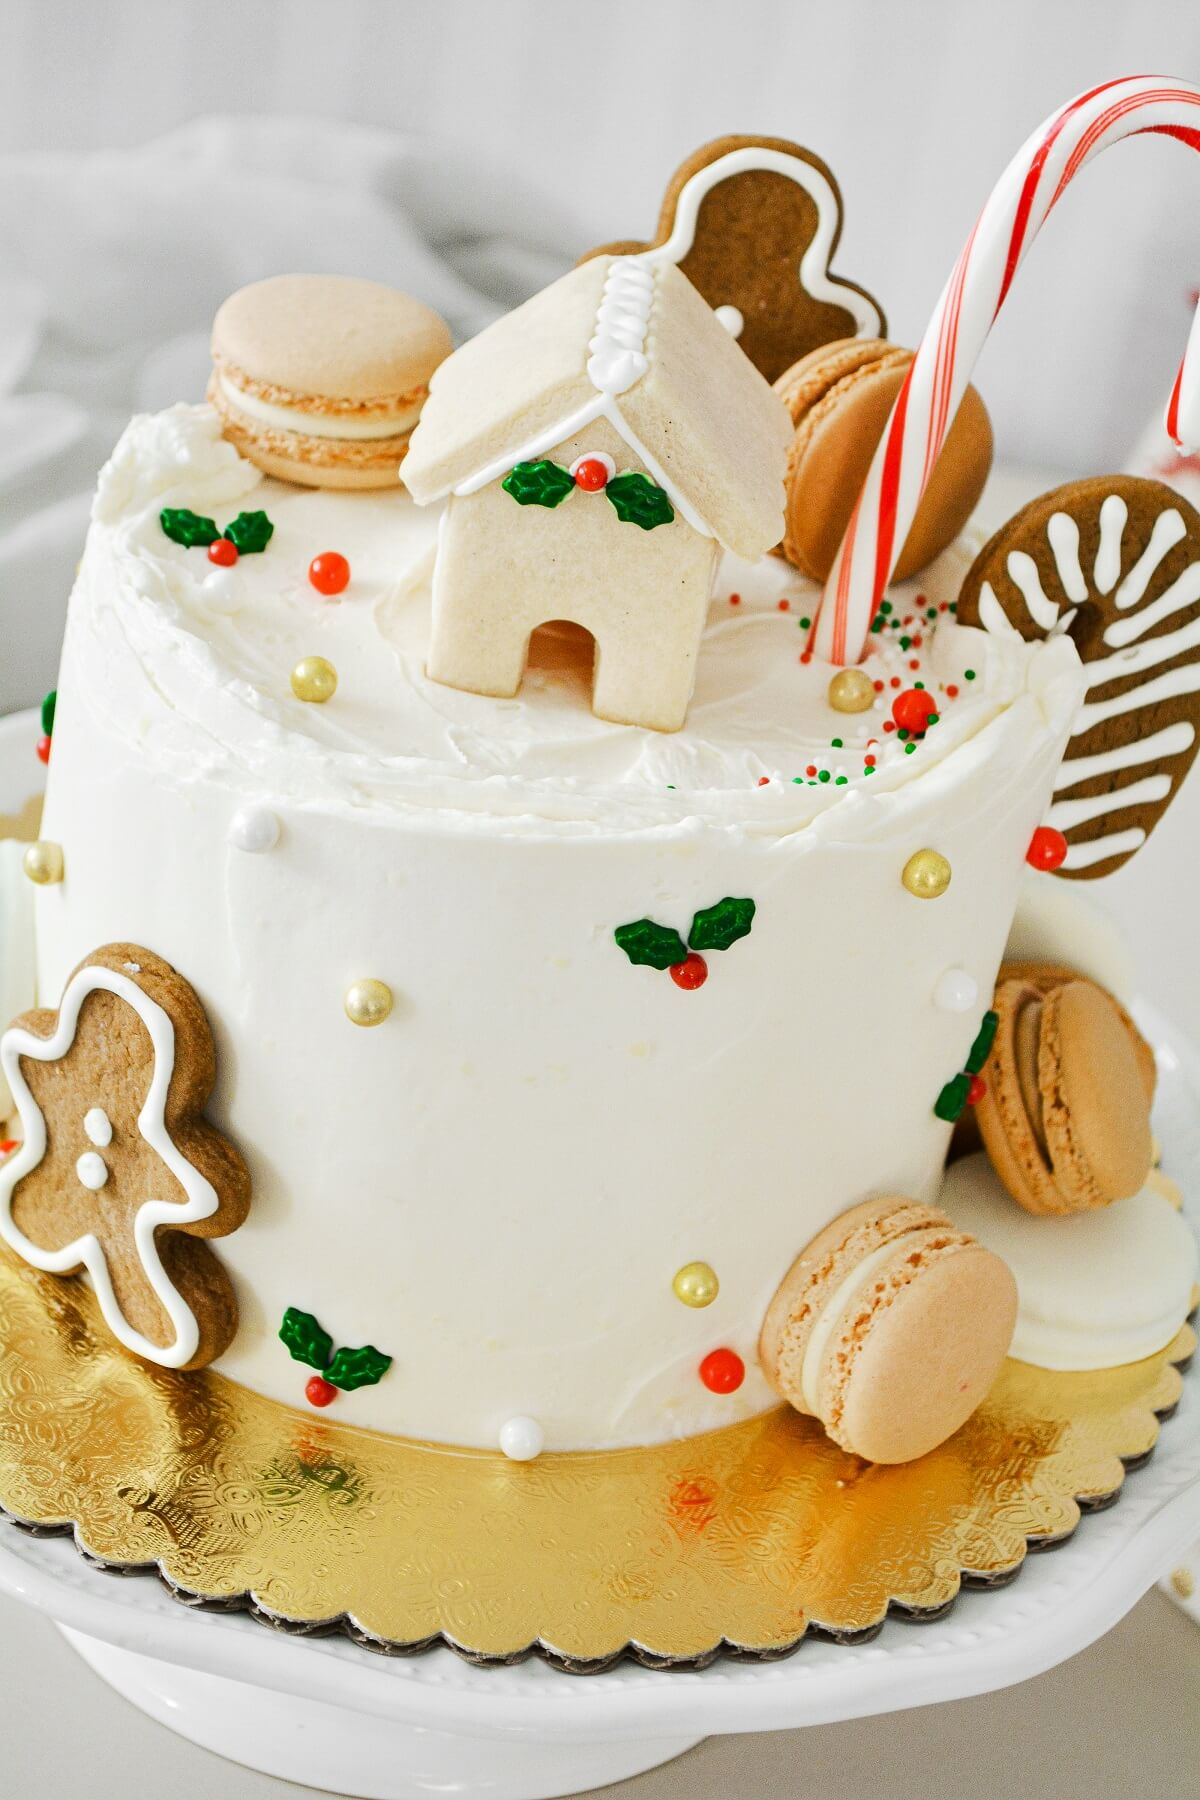 A Christmas cake decorated with candy canes and Christmas cookies.